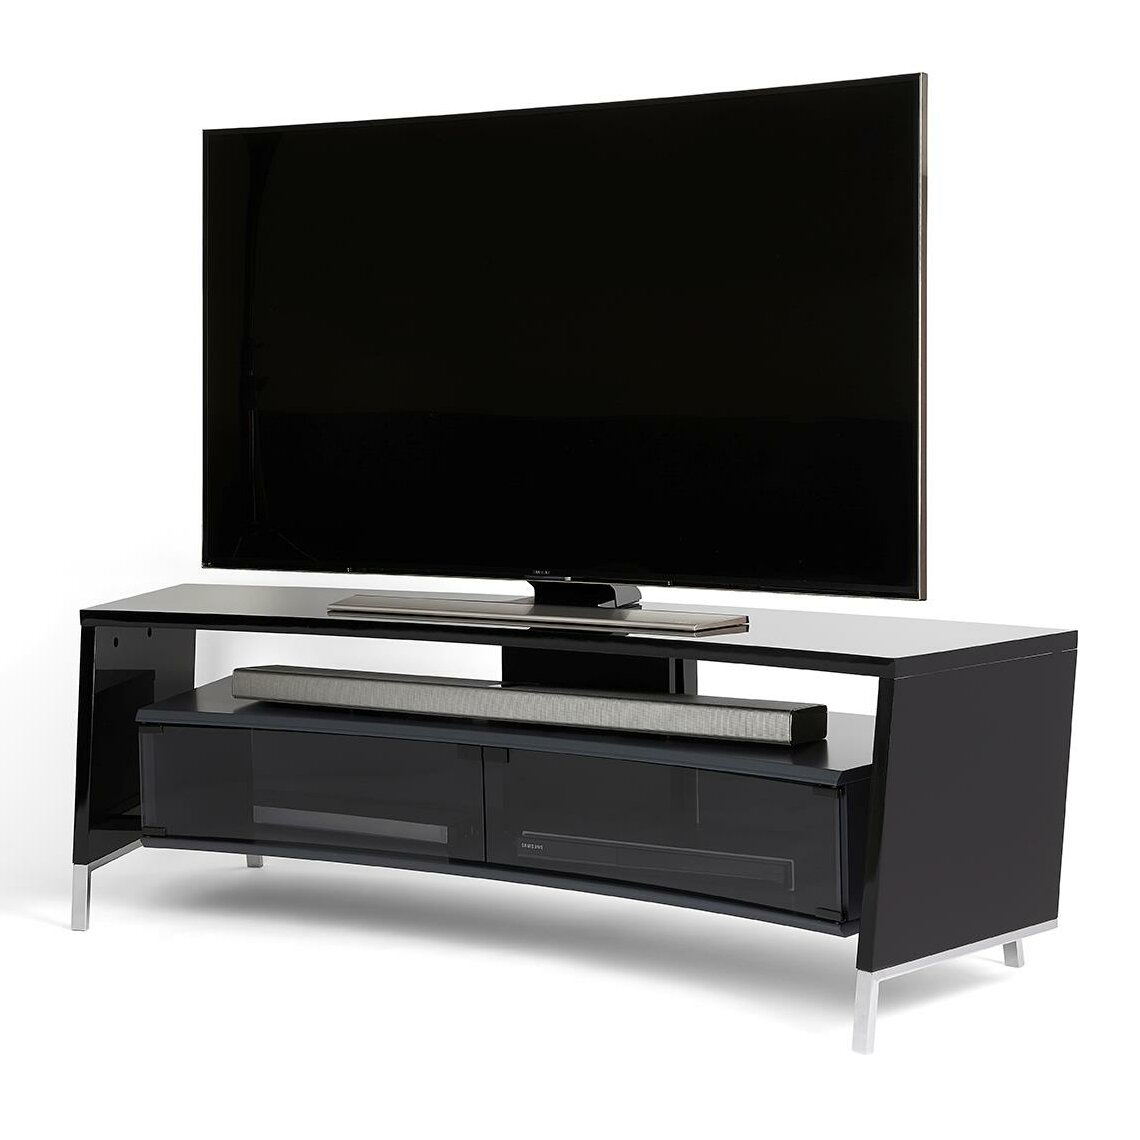 off the wall curve tv stand reviews wayfair. Black Bedroom Furniture Sets. Home Design Ideas